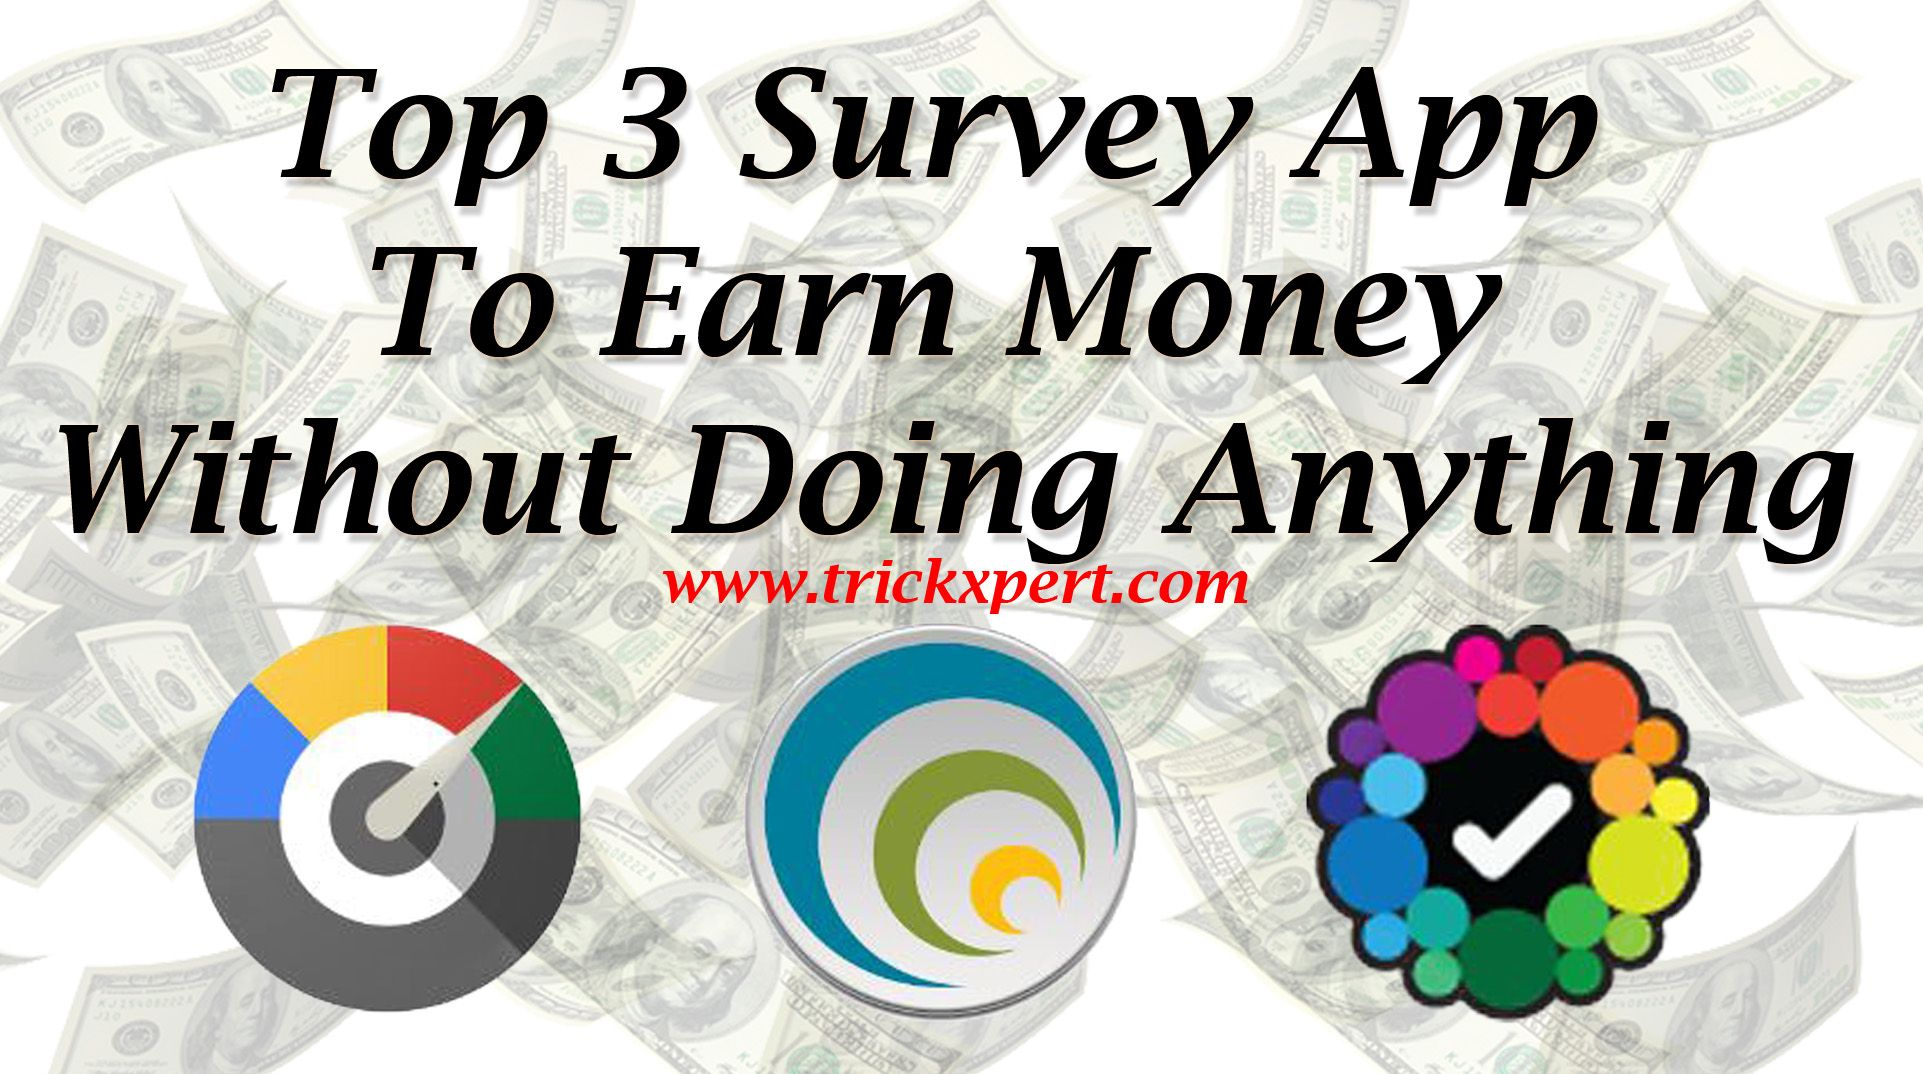 Top 3 Survey App To Earn Money Without Doing Anything